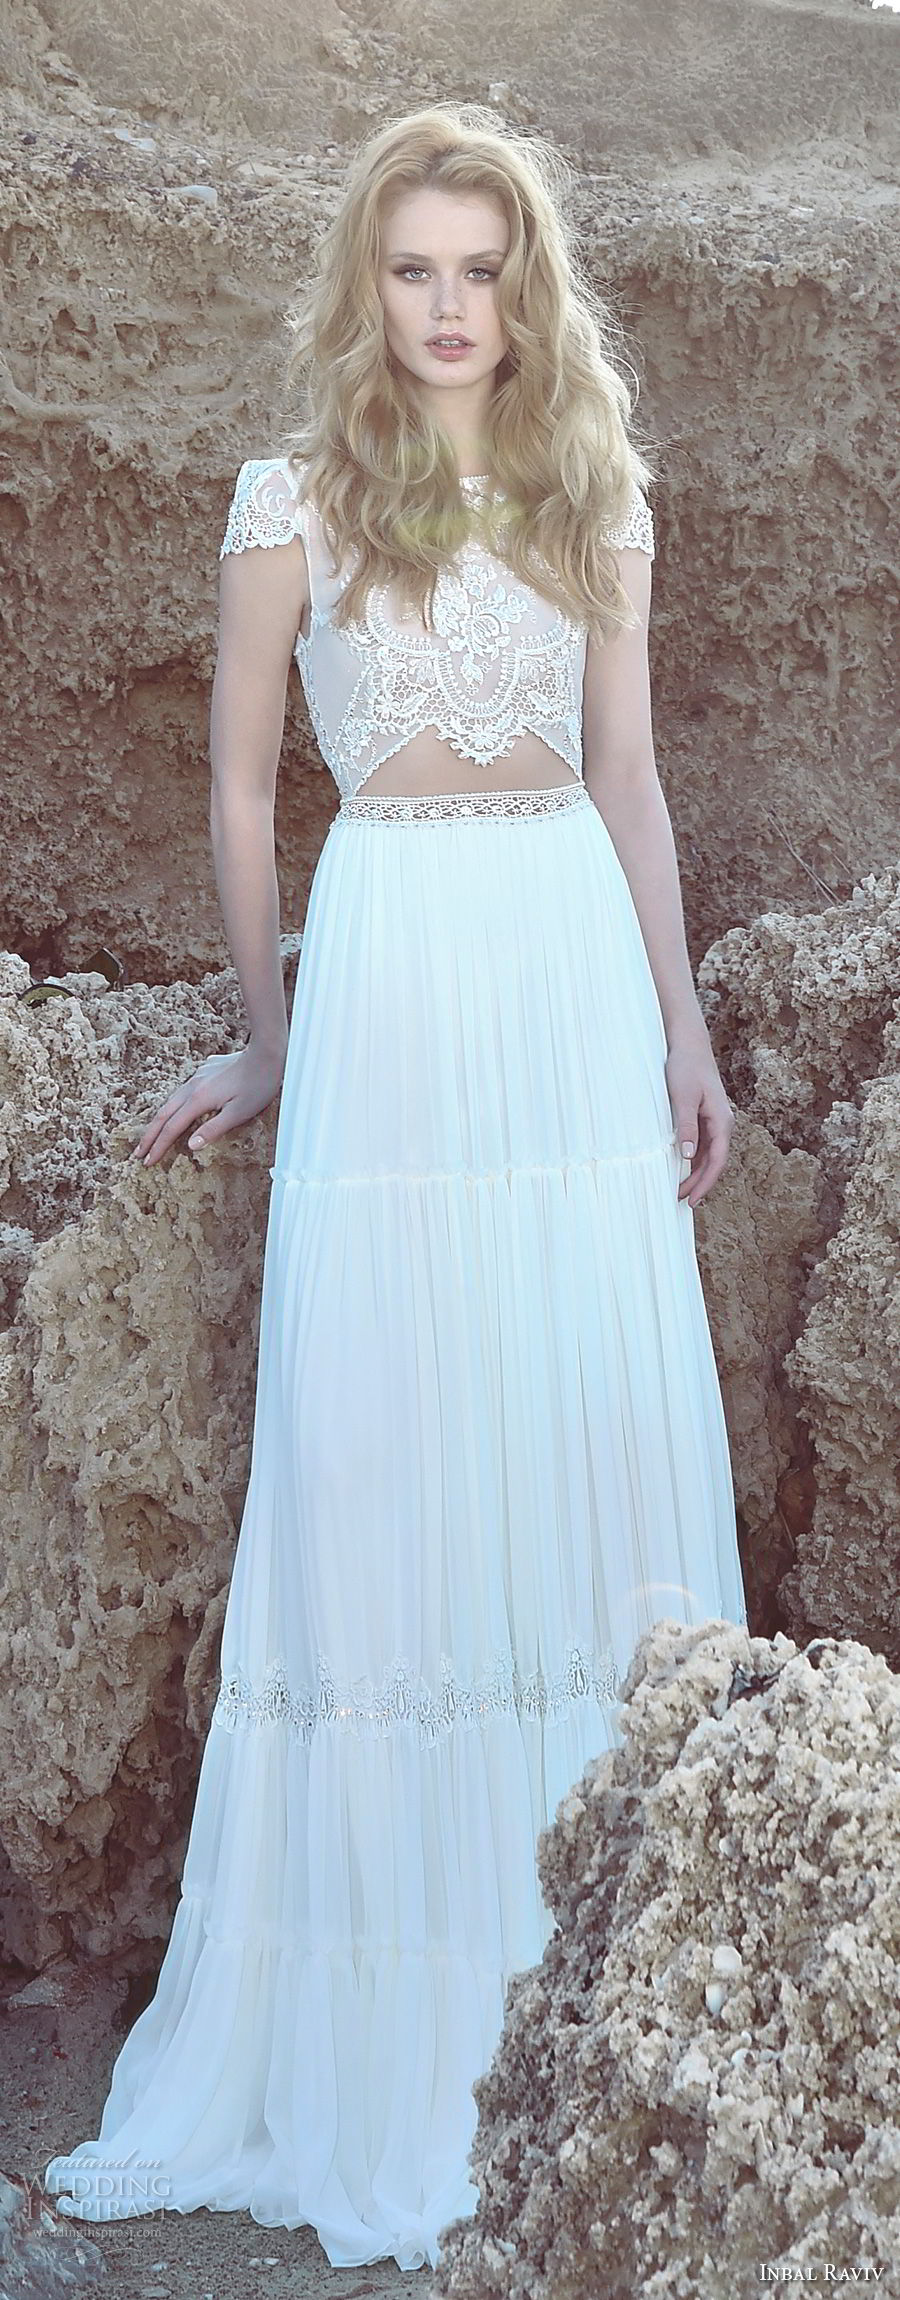 inbal raviv 2017 bridal cap sleeves jewel neck heavily embellished bodice crop top soft a  line wedding dress open v back sweep train (beky) lv